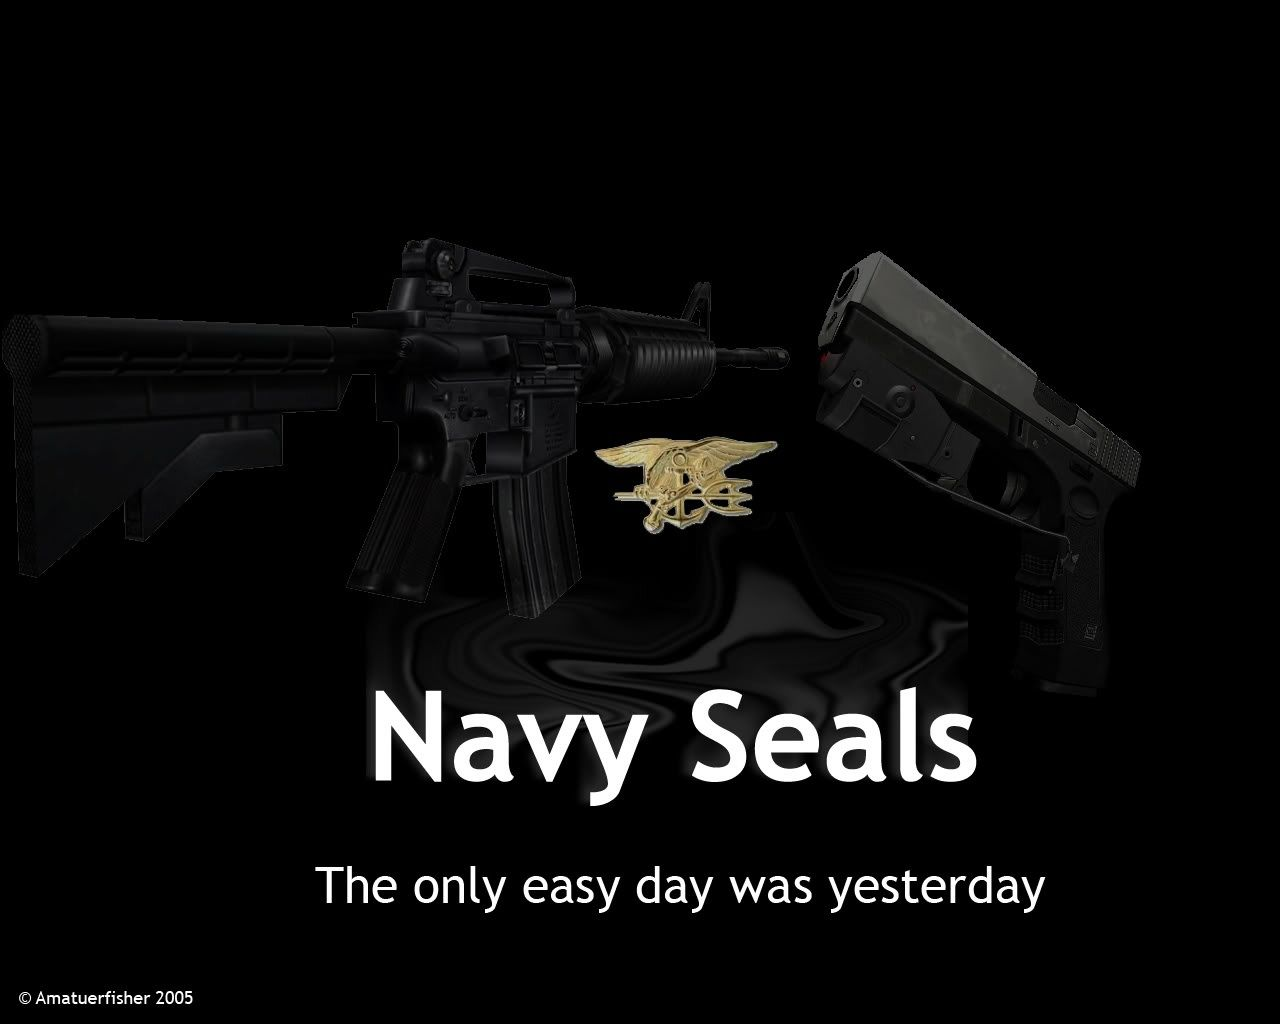 Navy seal wallpapers hdq navy seal images collection for desktop cia navy seal us seals your hd wallpaper shared via slingpic altavistaventures Choice Image